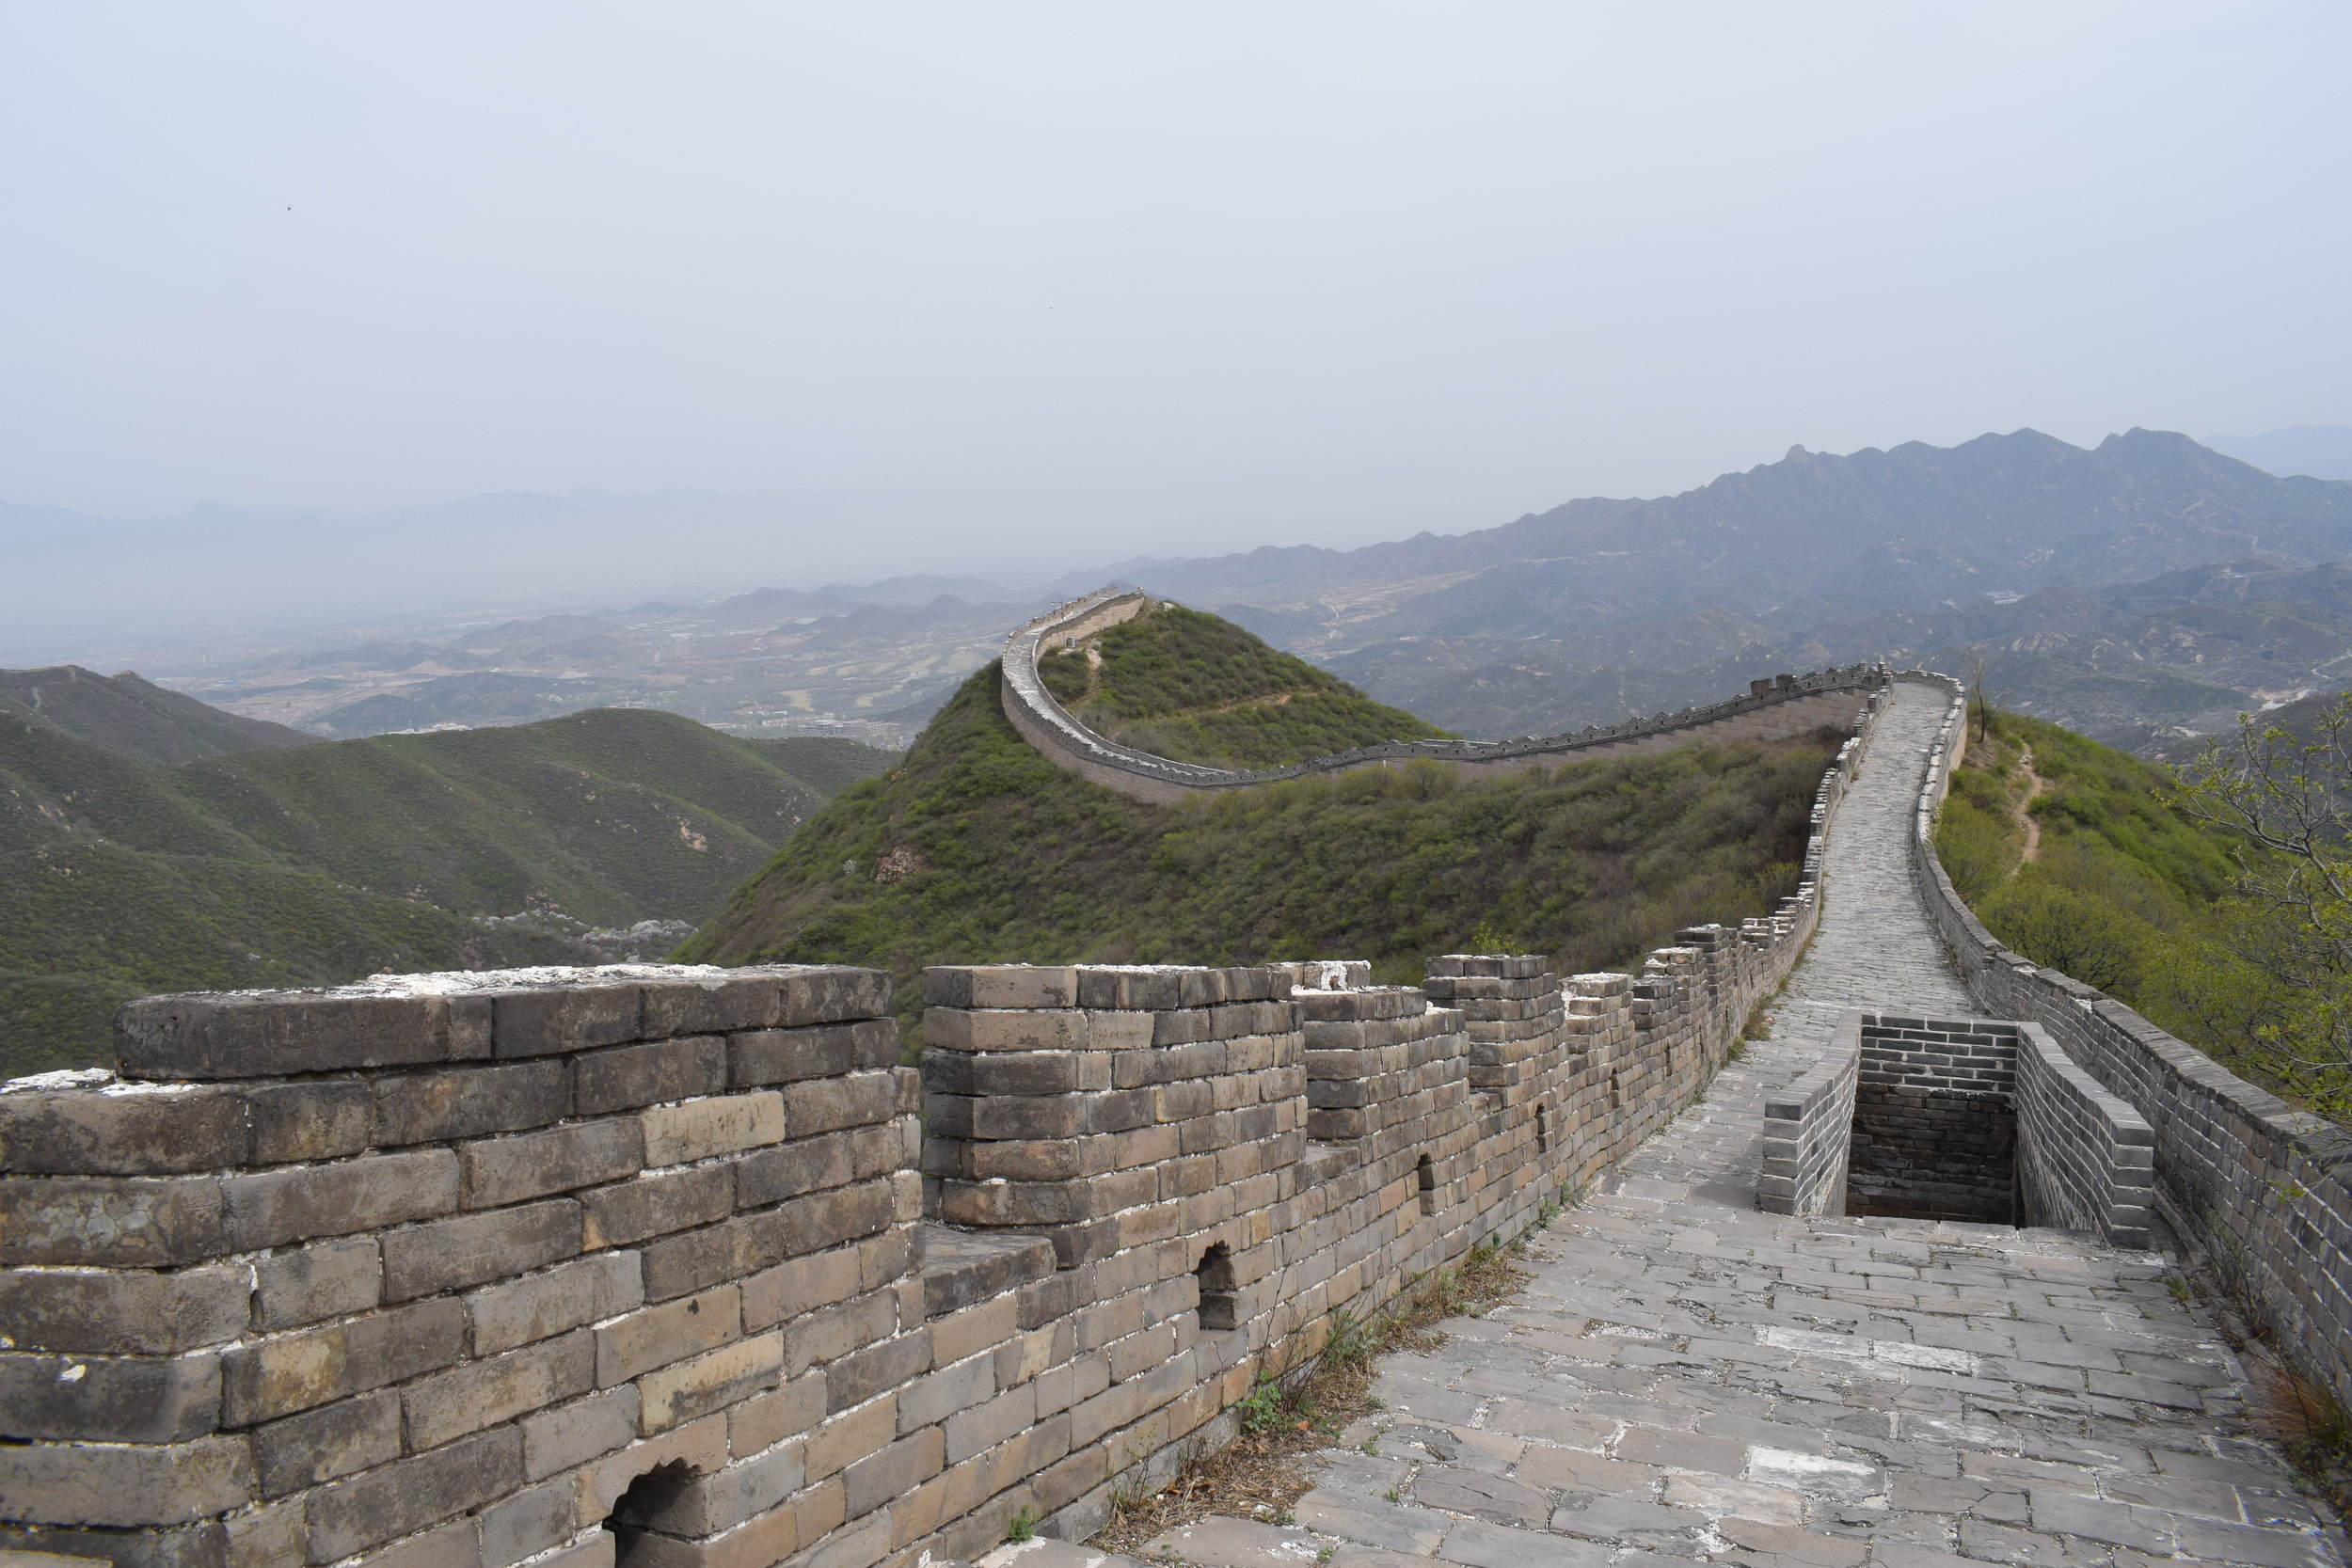 The Great Wall of China & Summer Palace Beijing